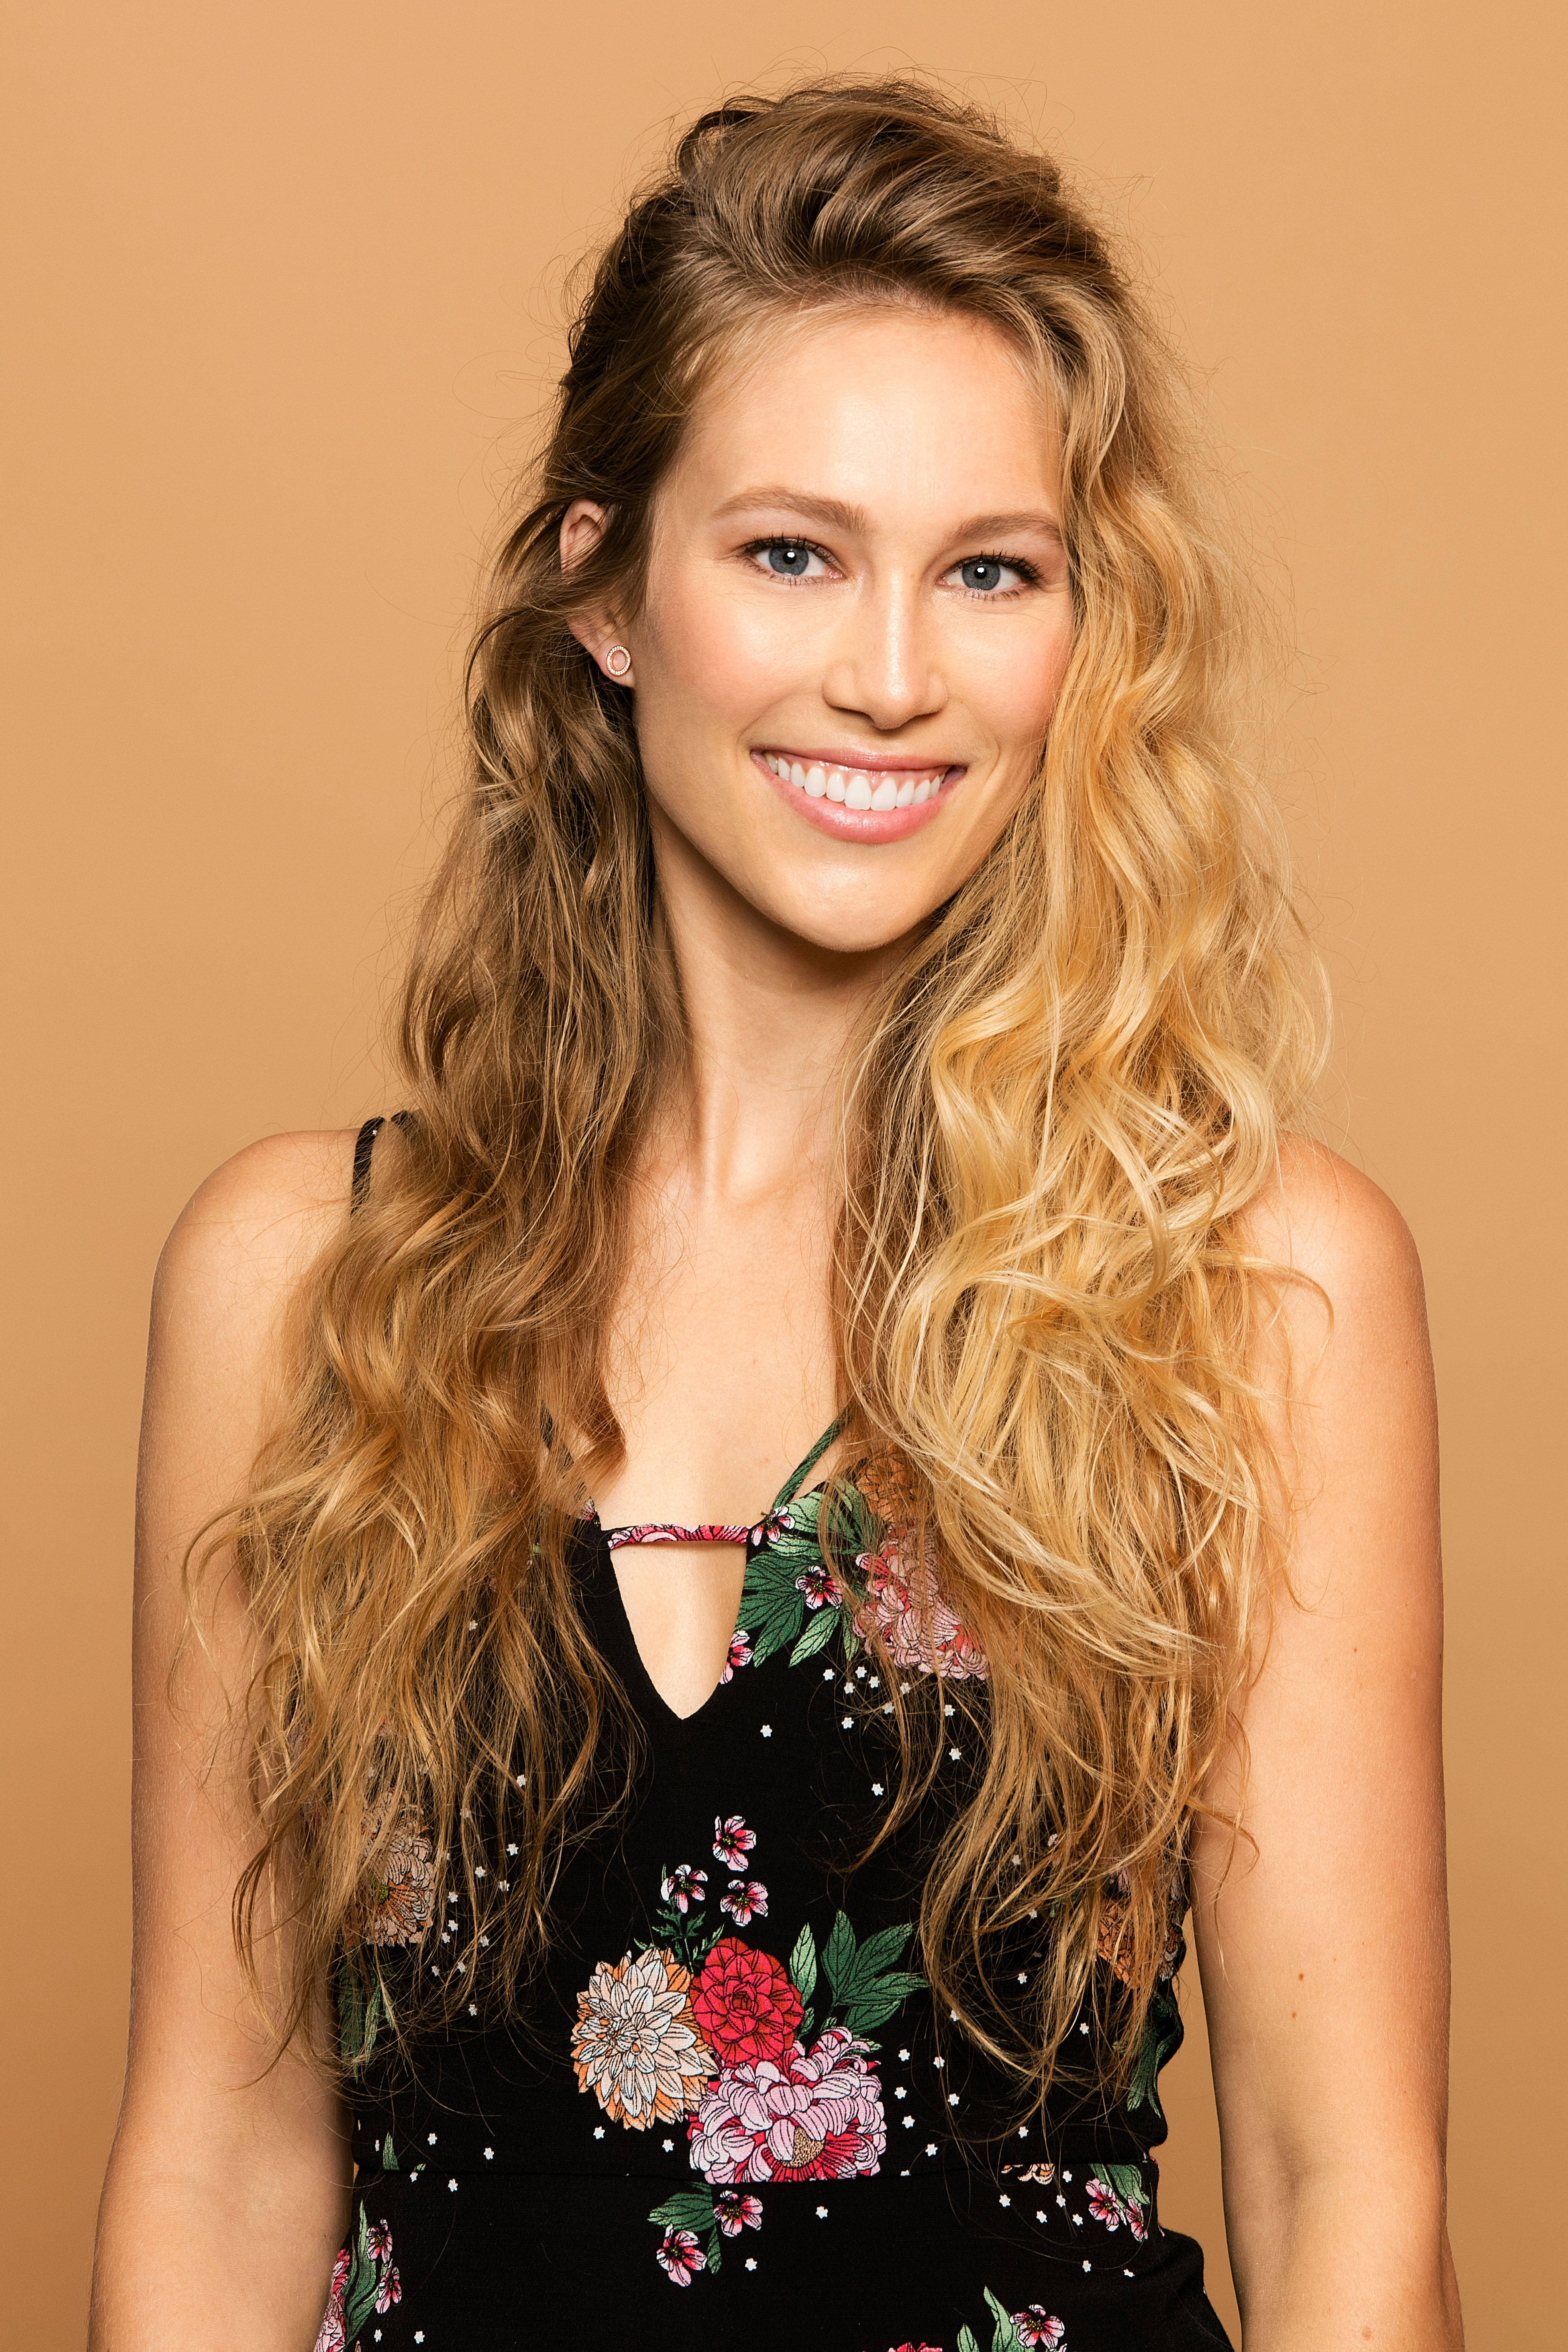 7 Easy Ways To Style Textured Curly Or Wavy Hair